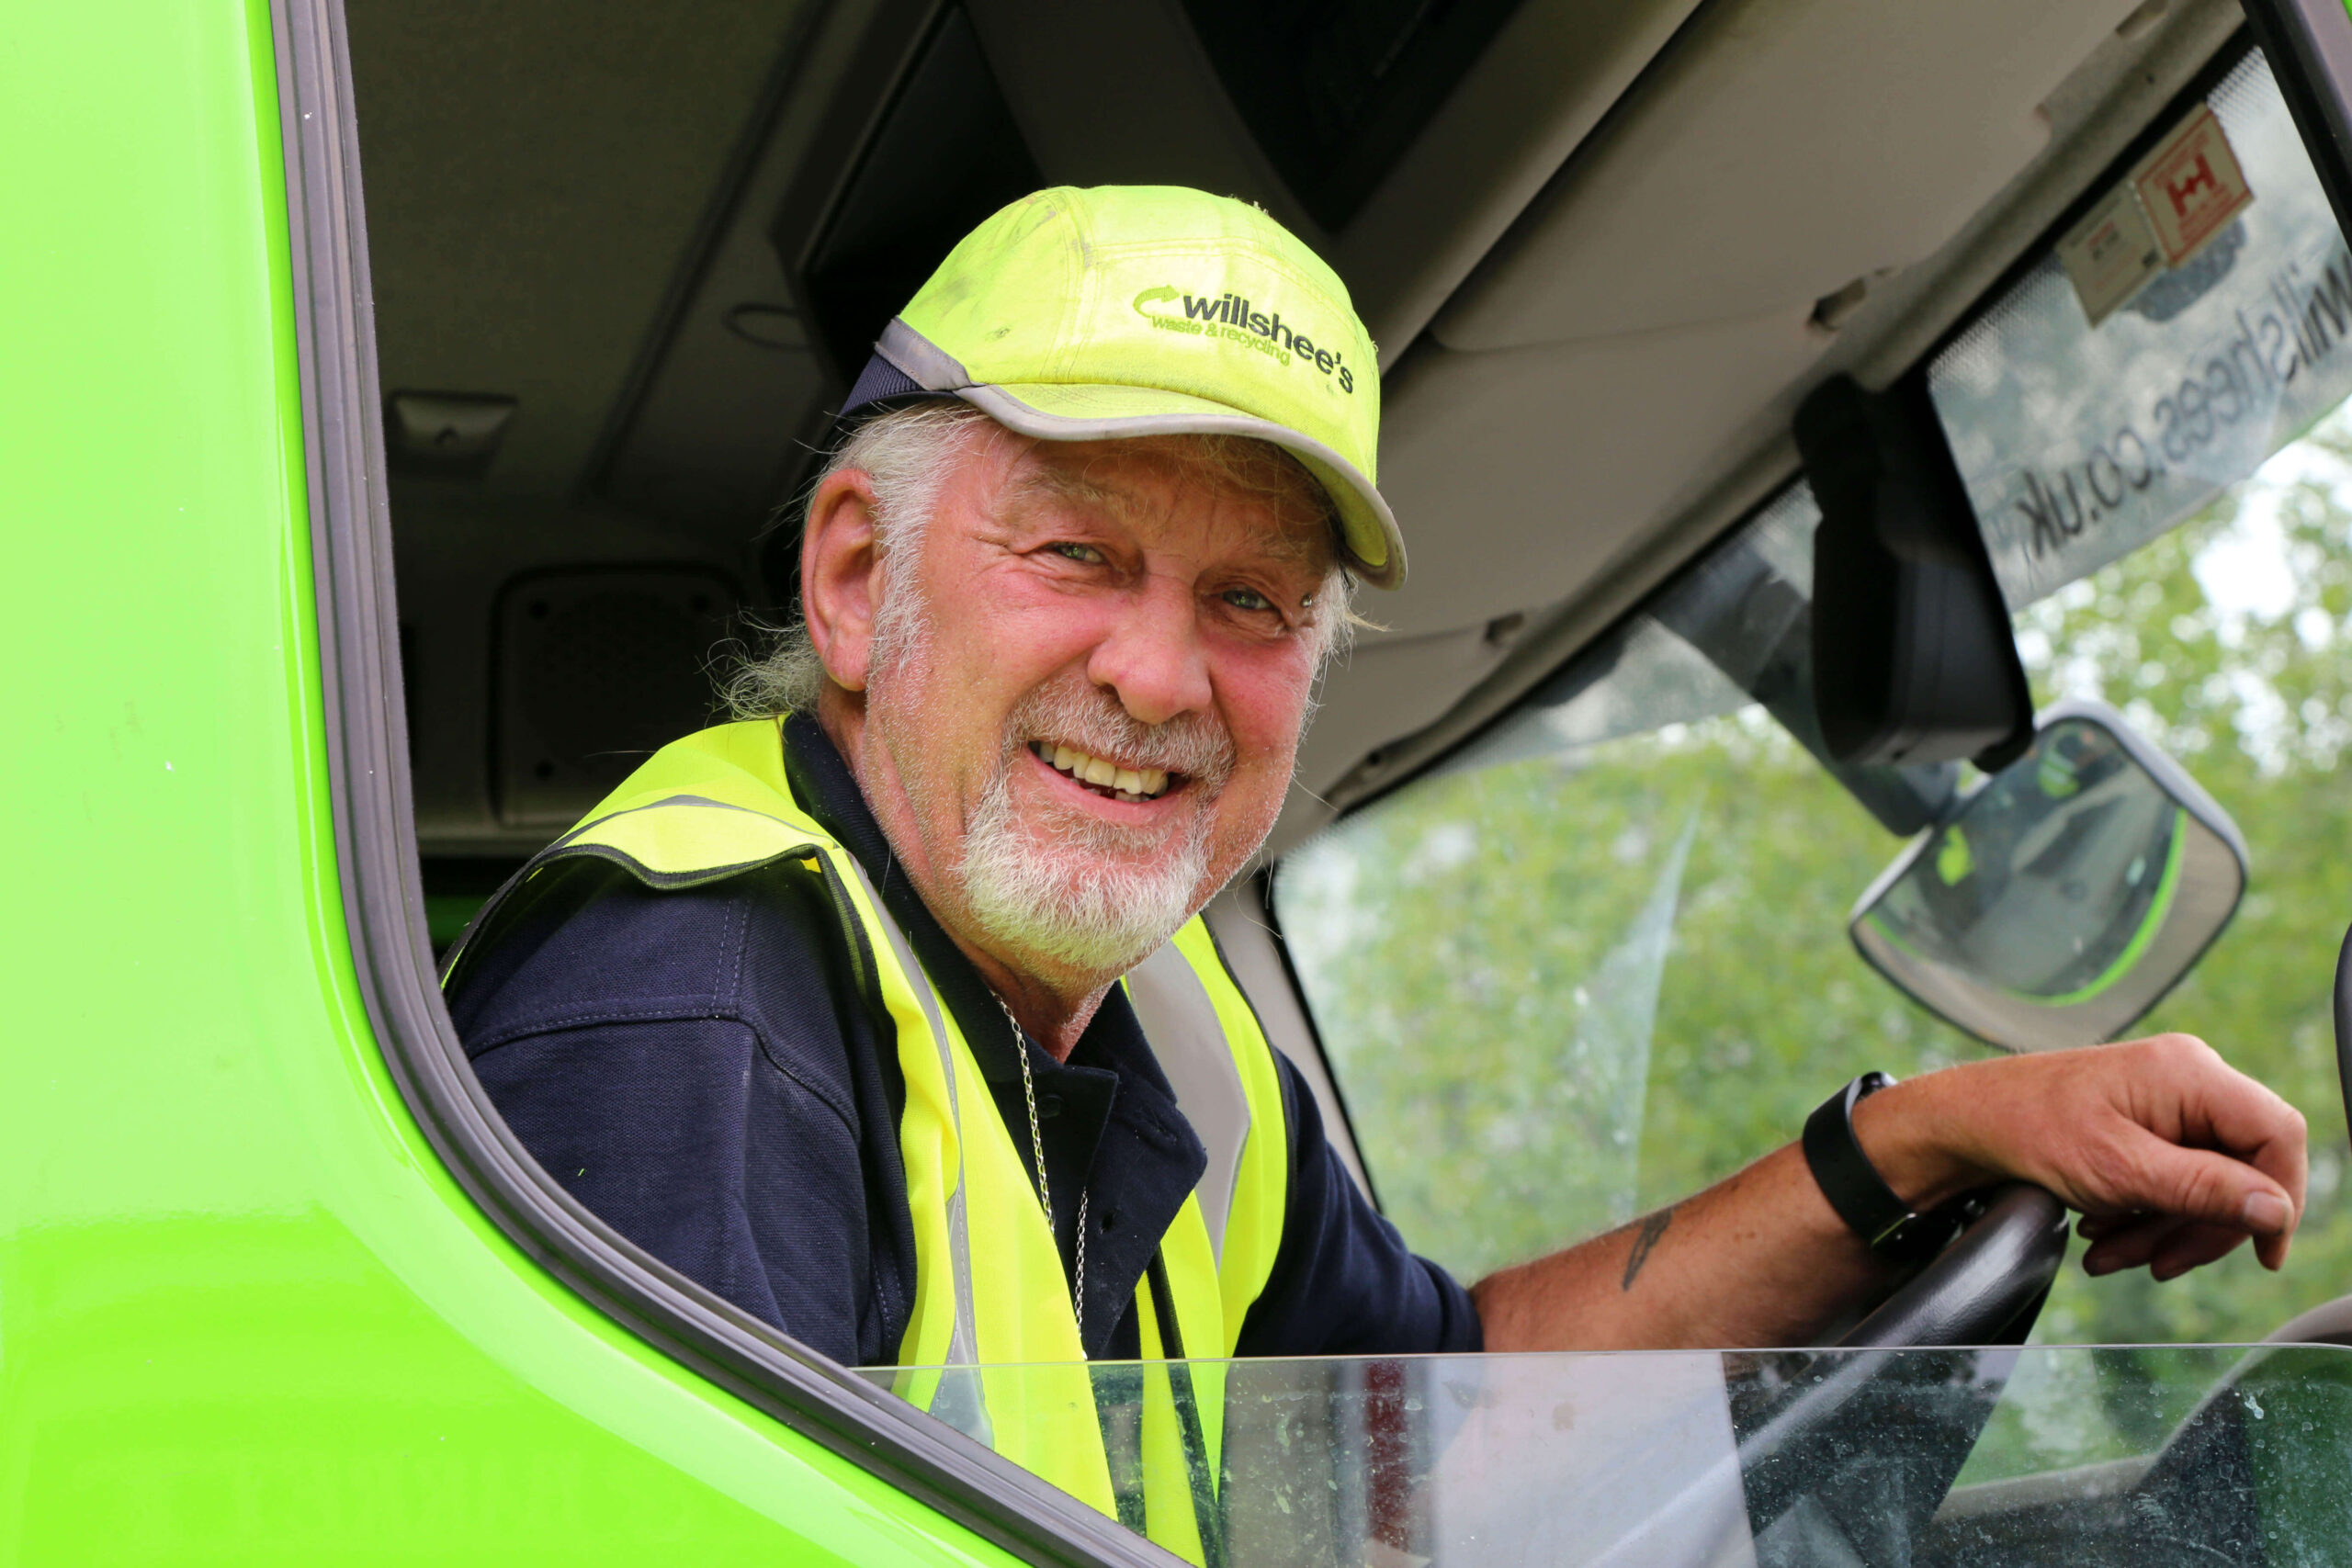 Willshee's lorry driver Paul Eames in his cab